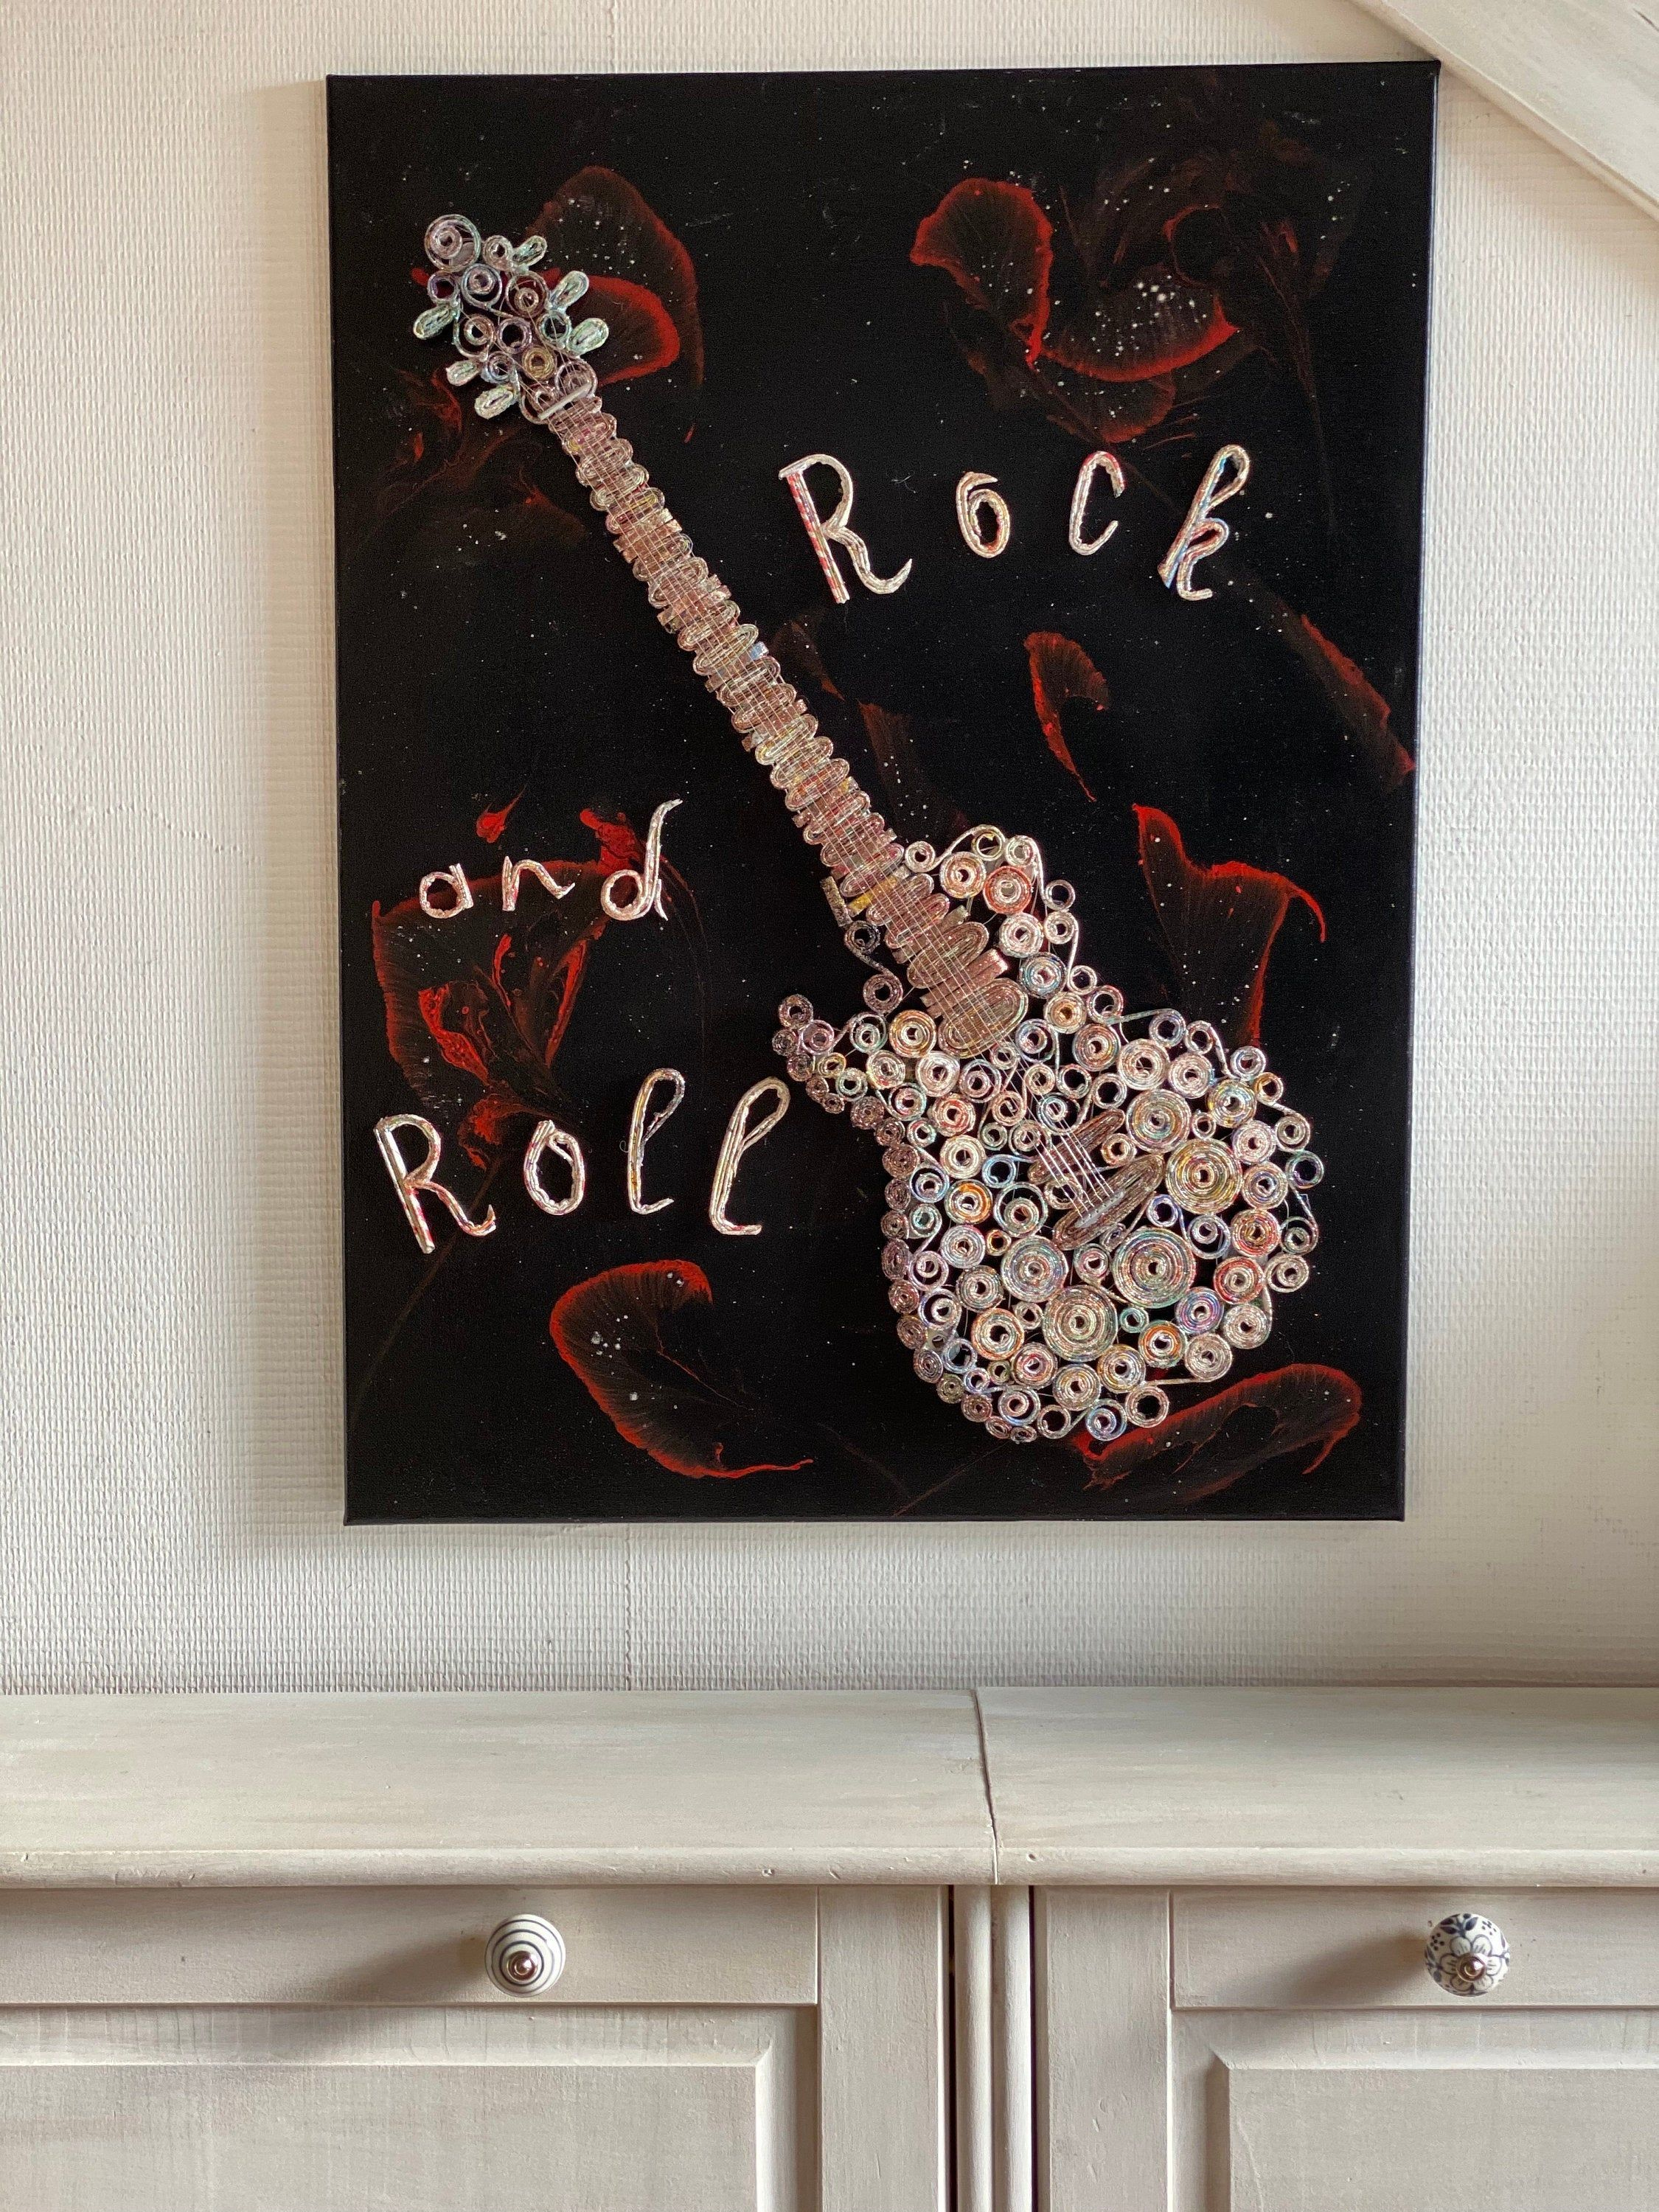 Table Decoration Wall Art Guitar Electric Paper And Green Led Handmade Green Led Paper